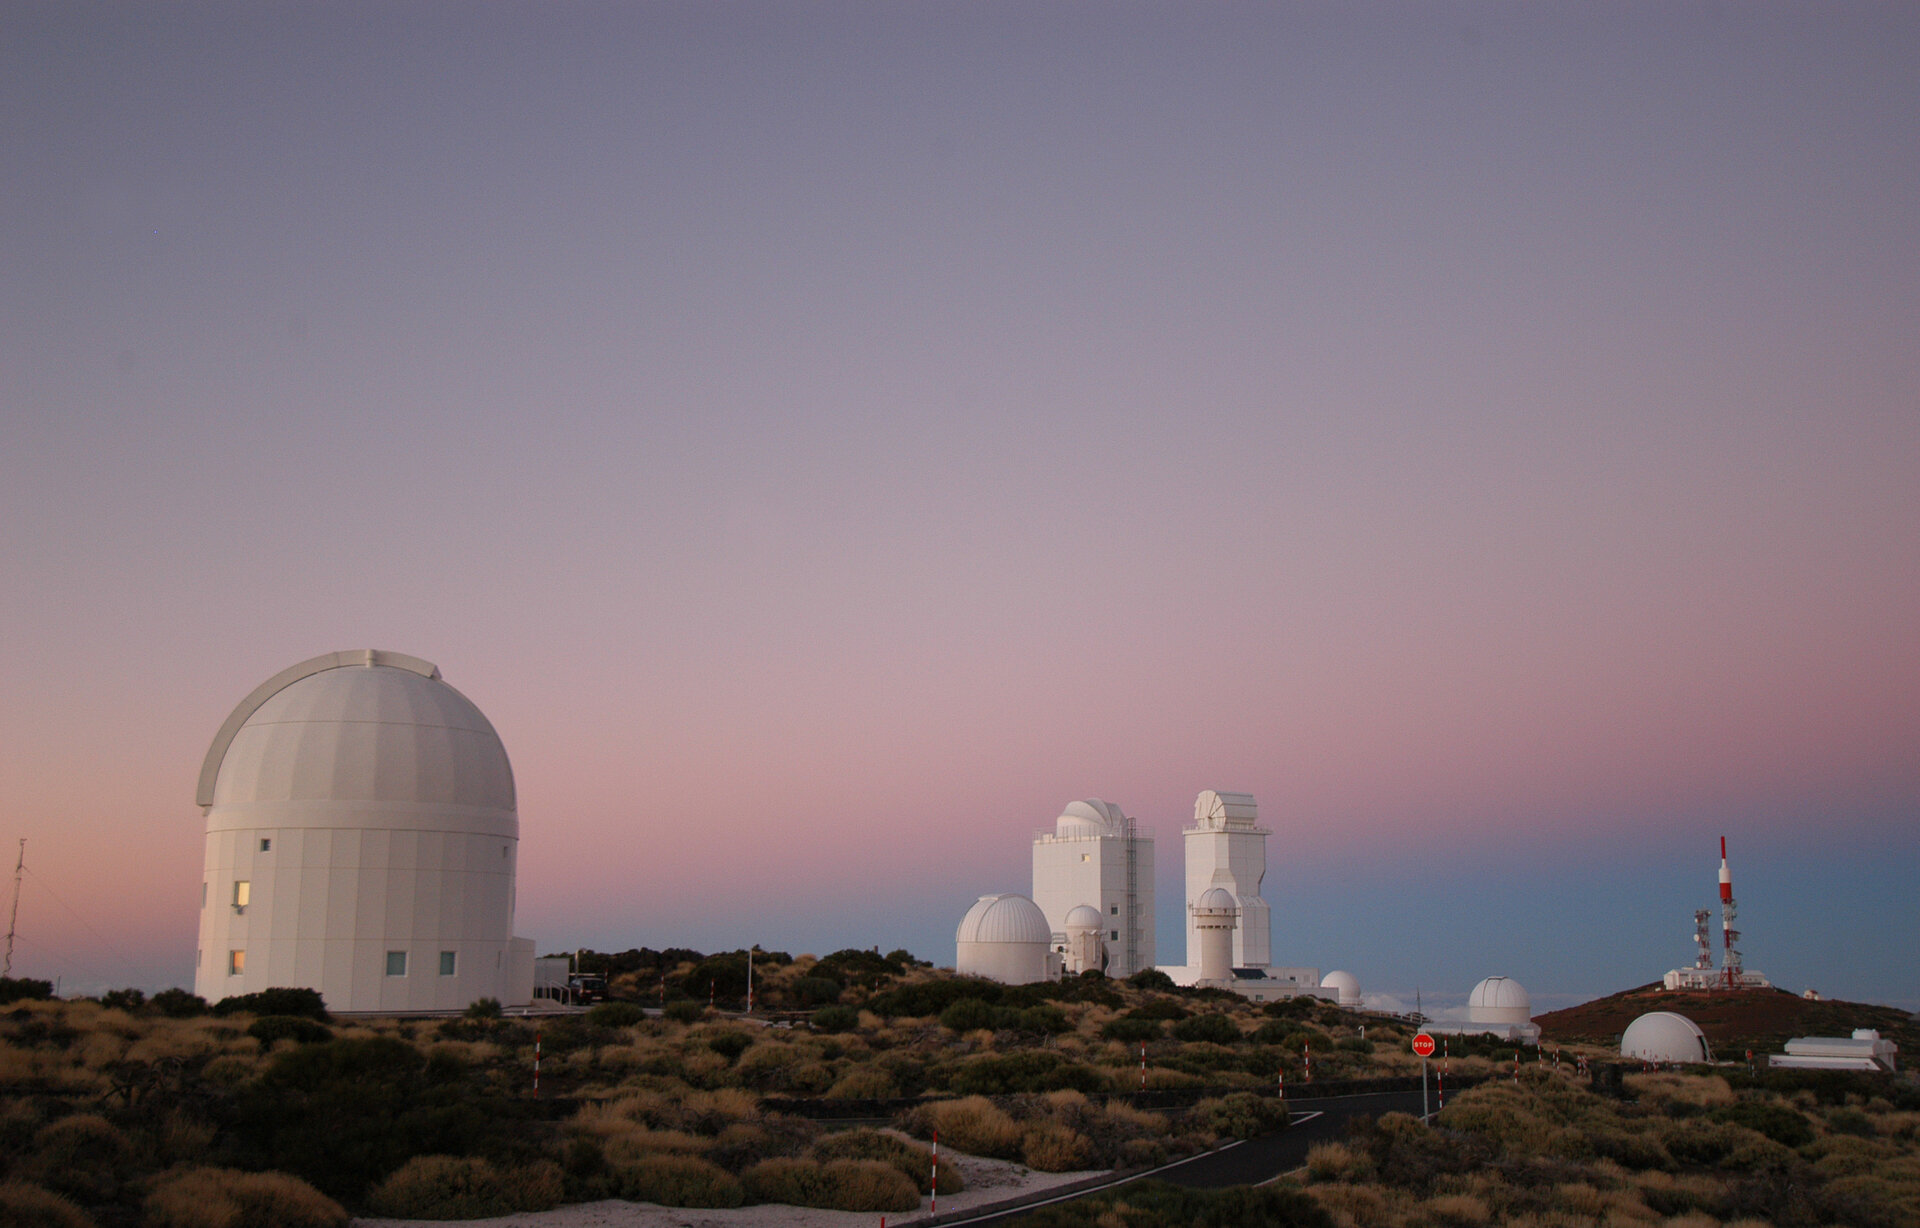 The Teide Observatory – ESA's wandering eye